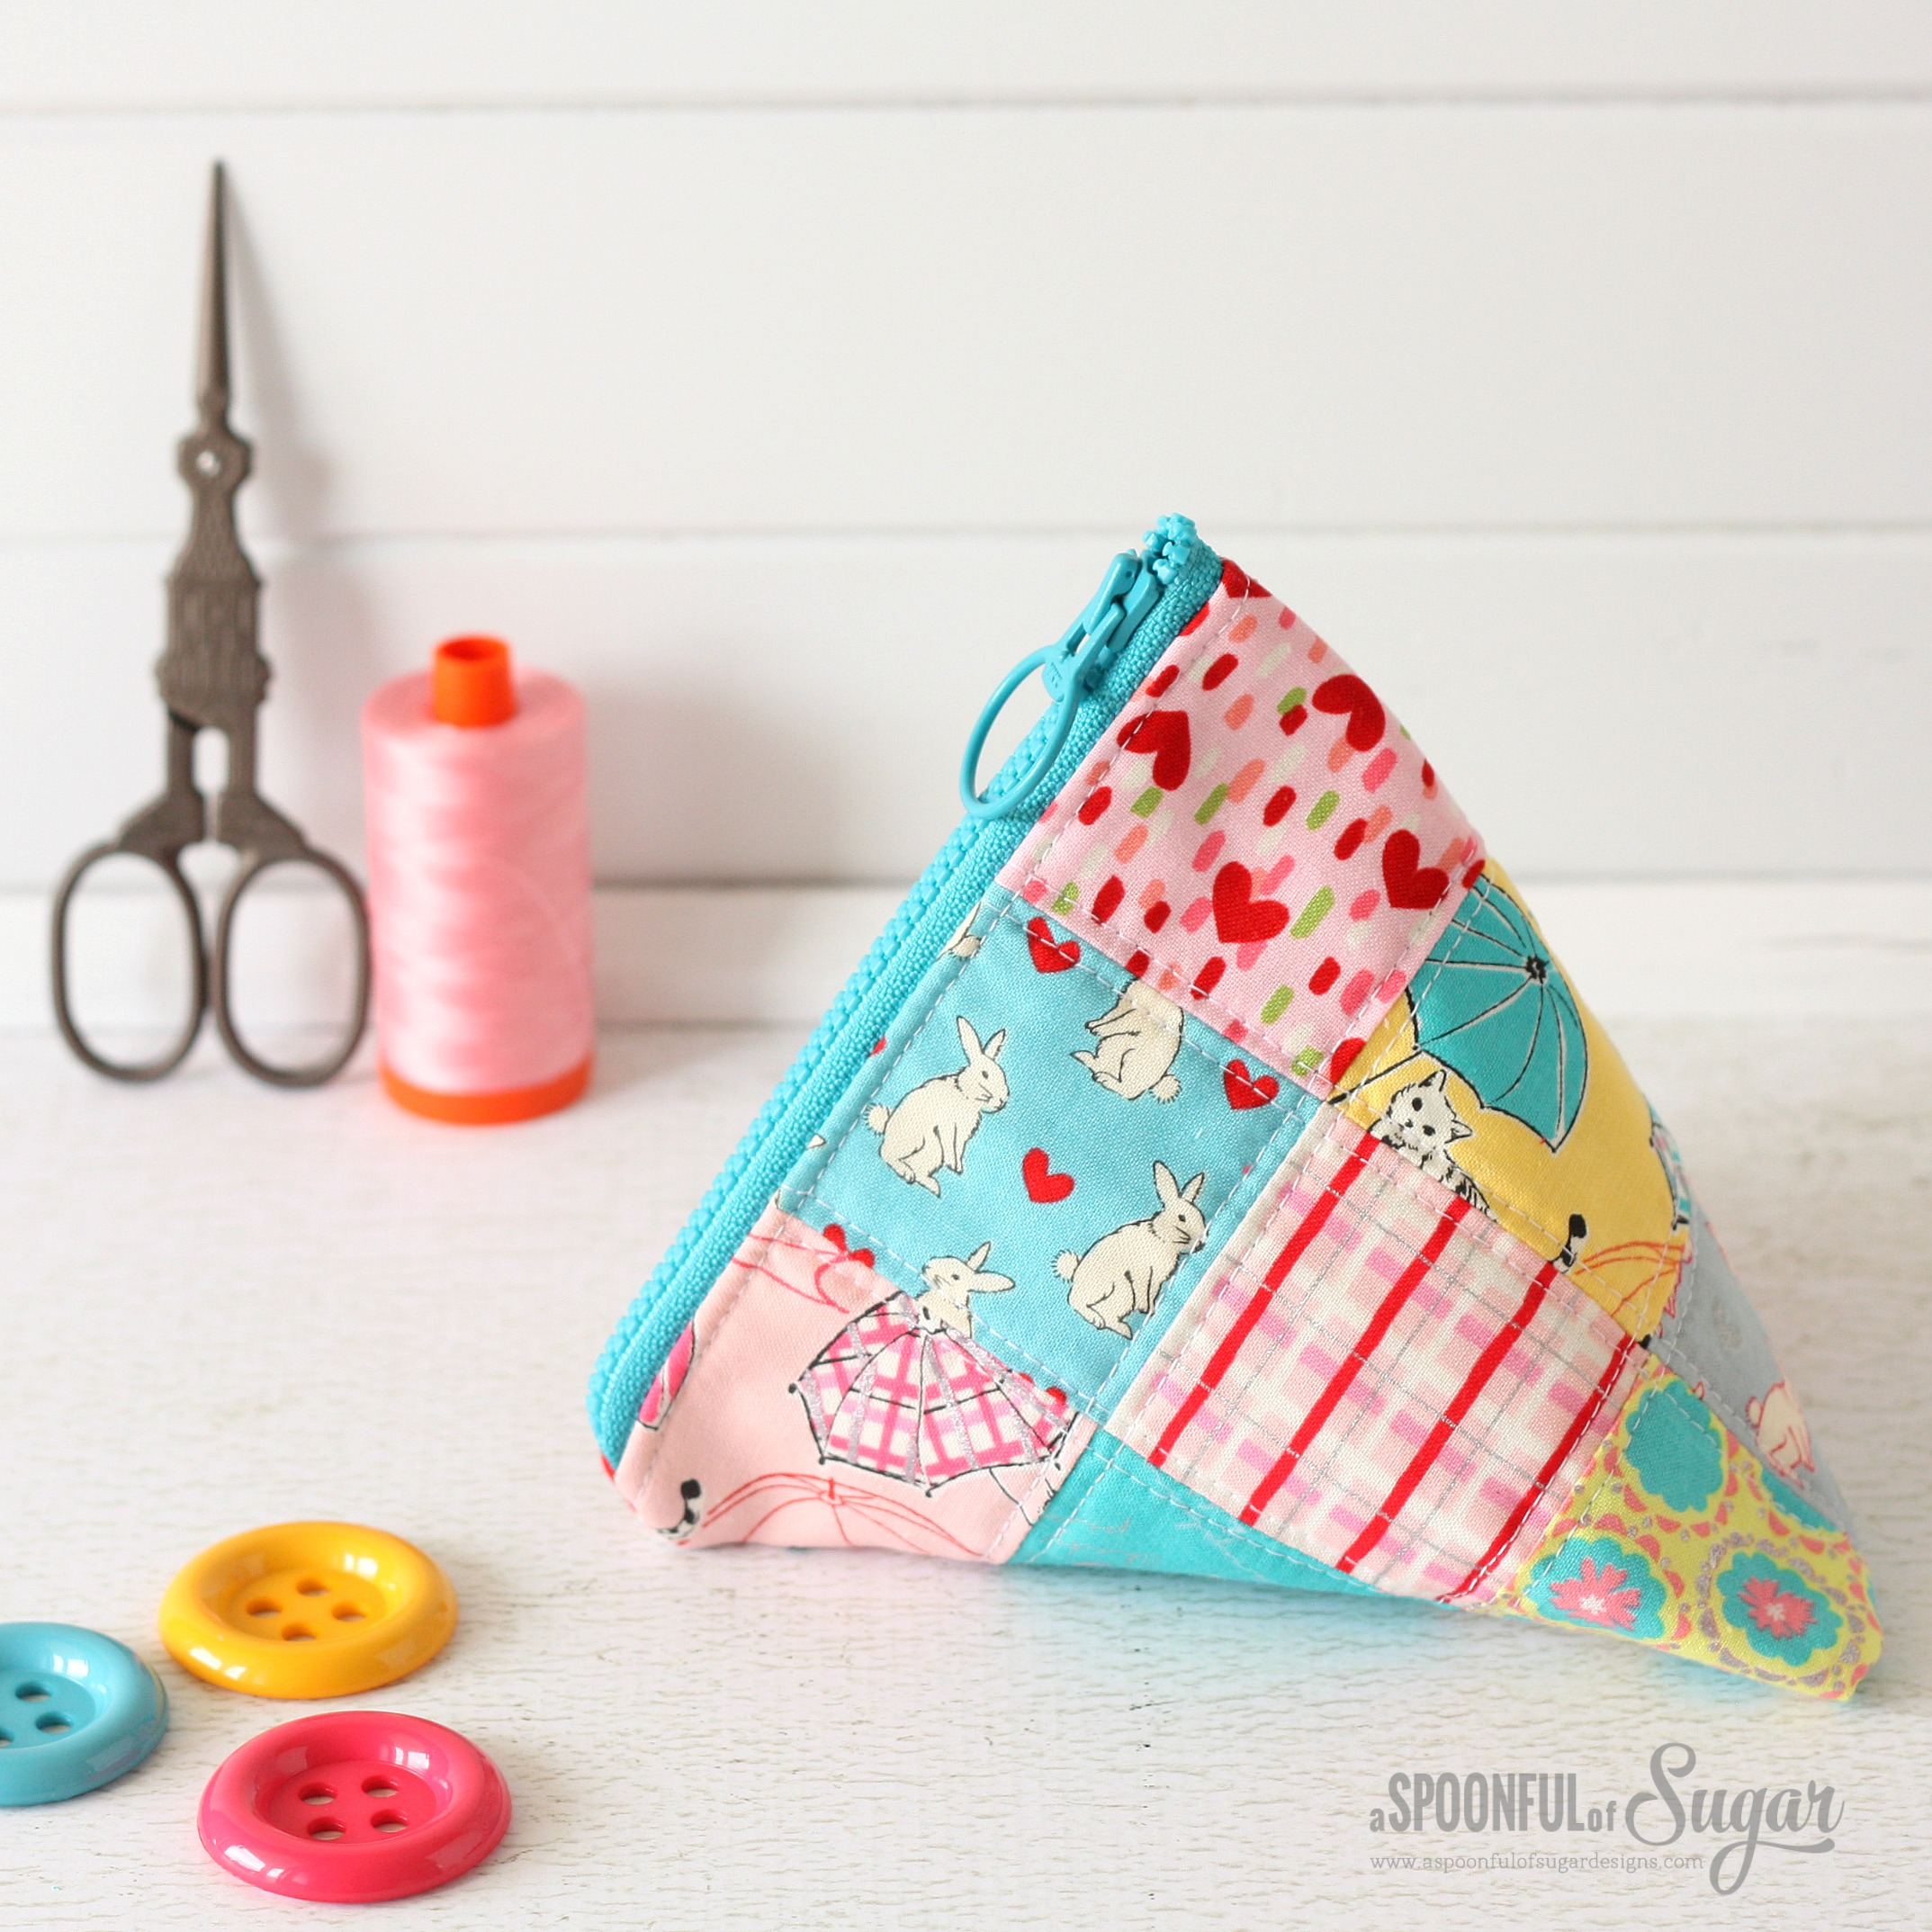 Patchwork Triangle Pouch - Top Sewing Tutorials from 2016 - A Spoonful of Sugar - www.aspoonfulofsugardesigns.com